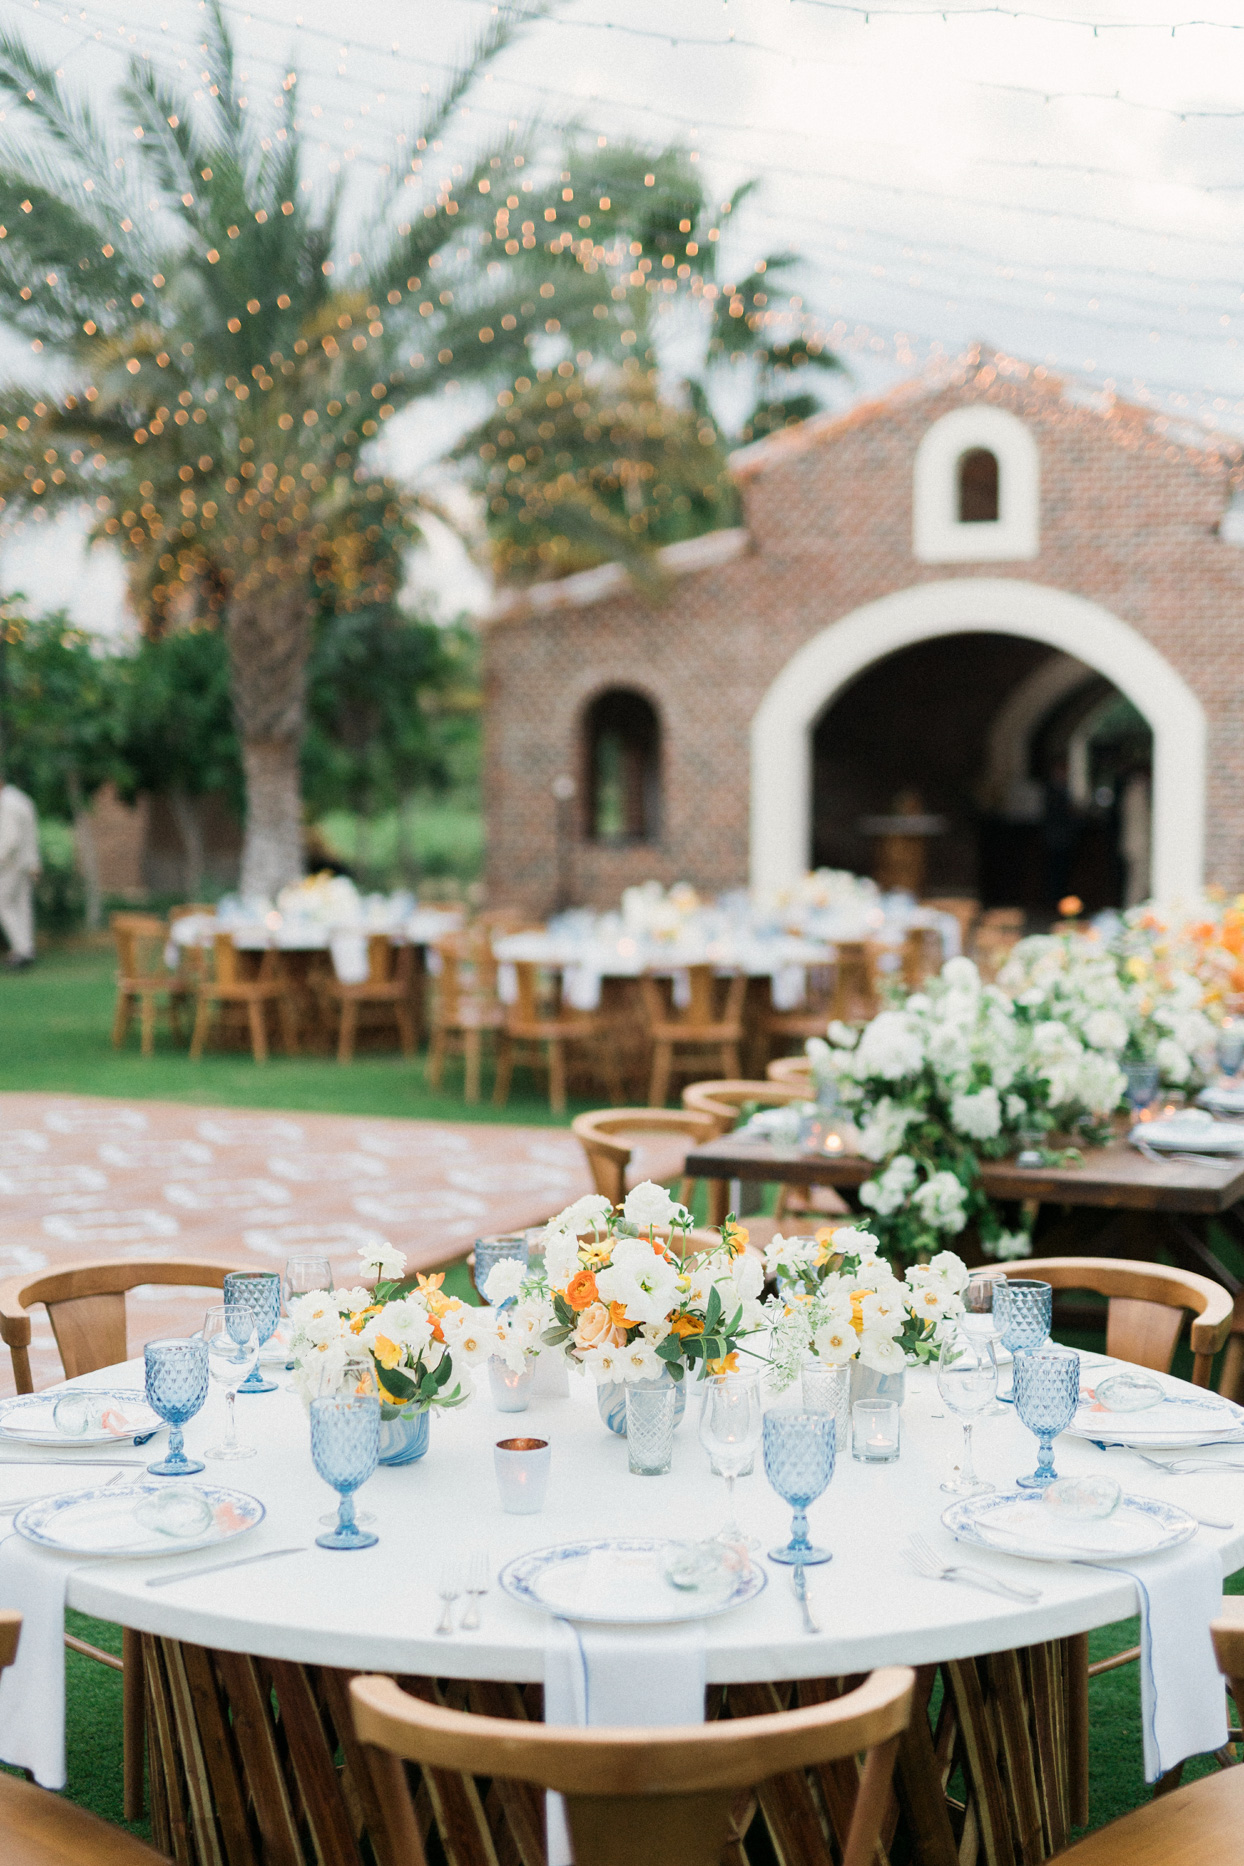 outdoor wedding tables with orange, white and blue floral decor